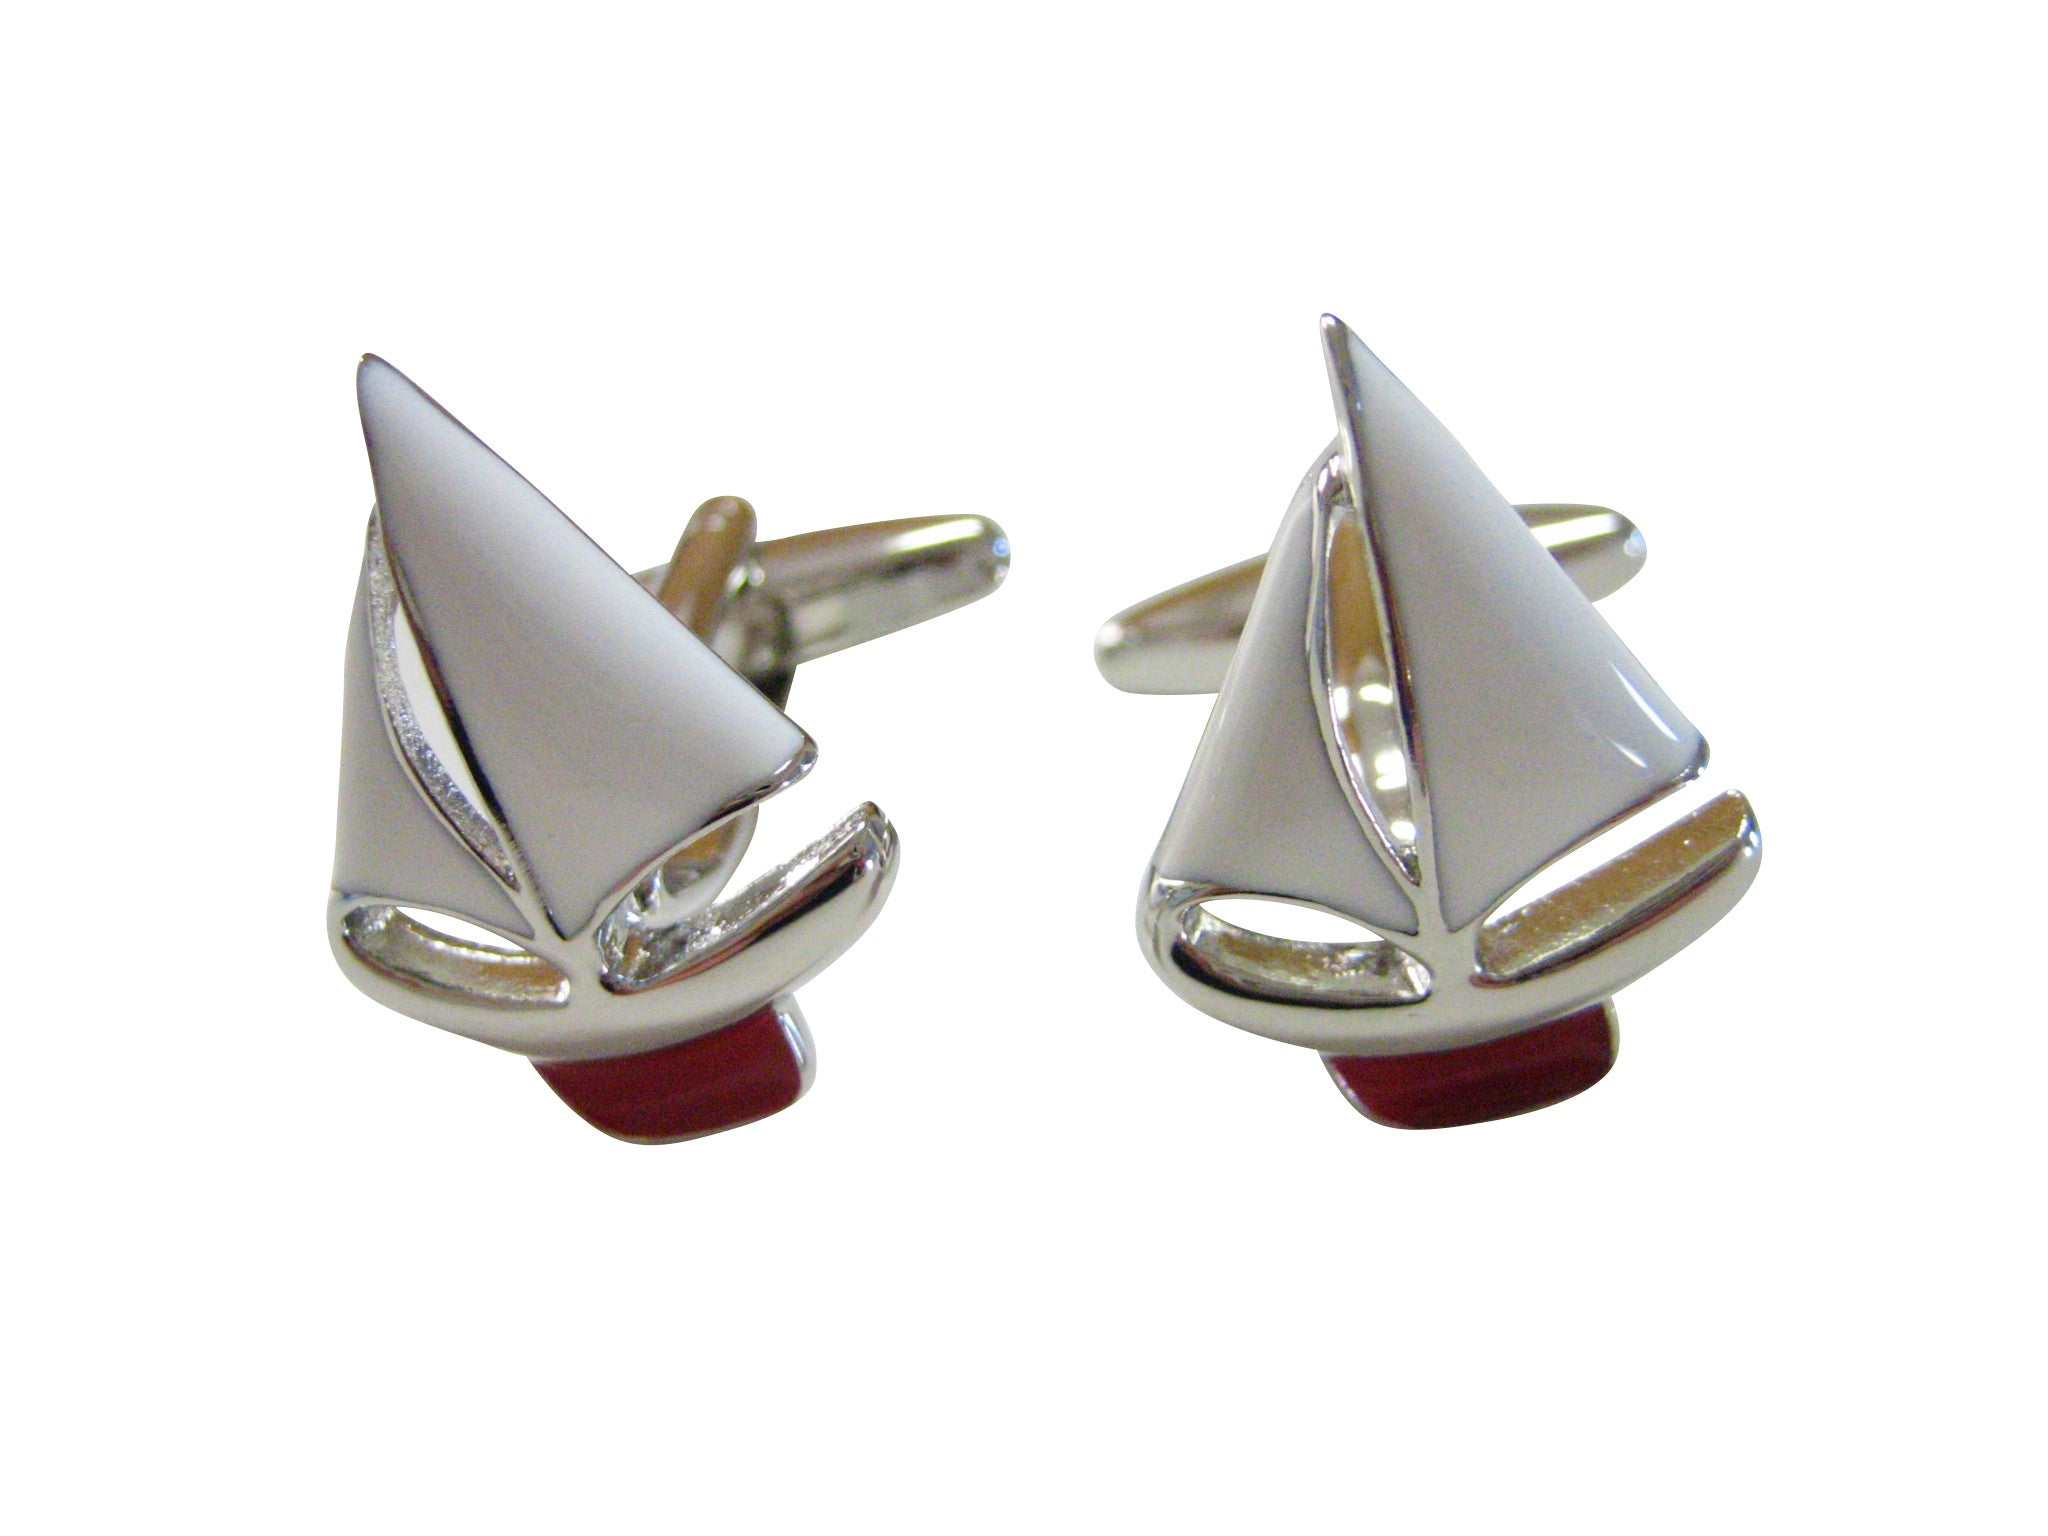 Red Sail Boat Cufflinks